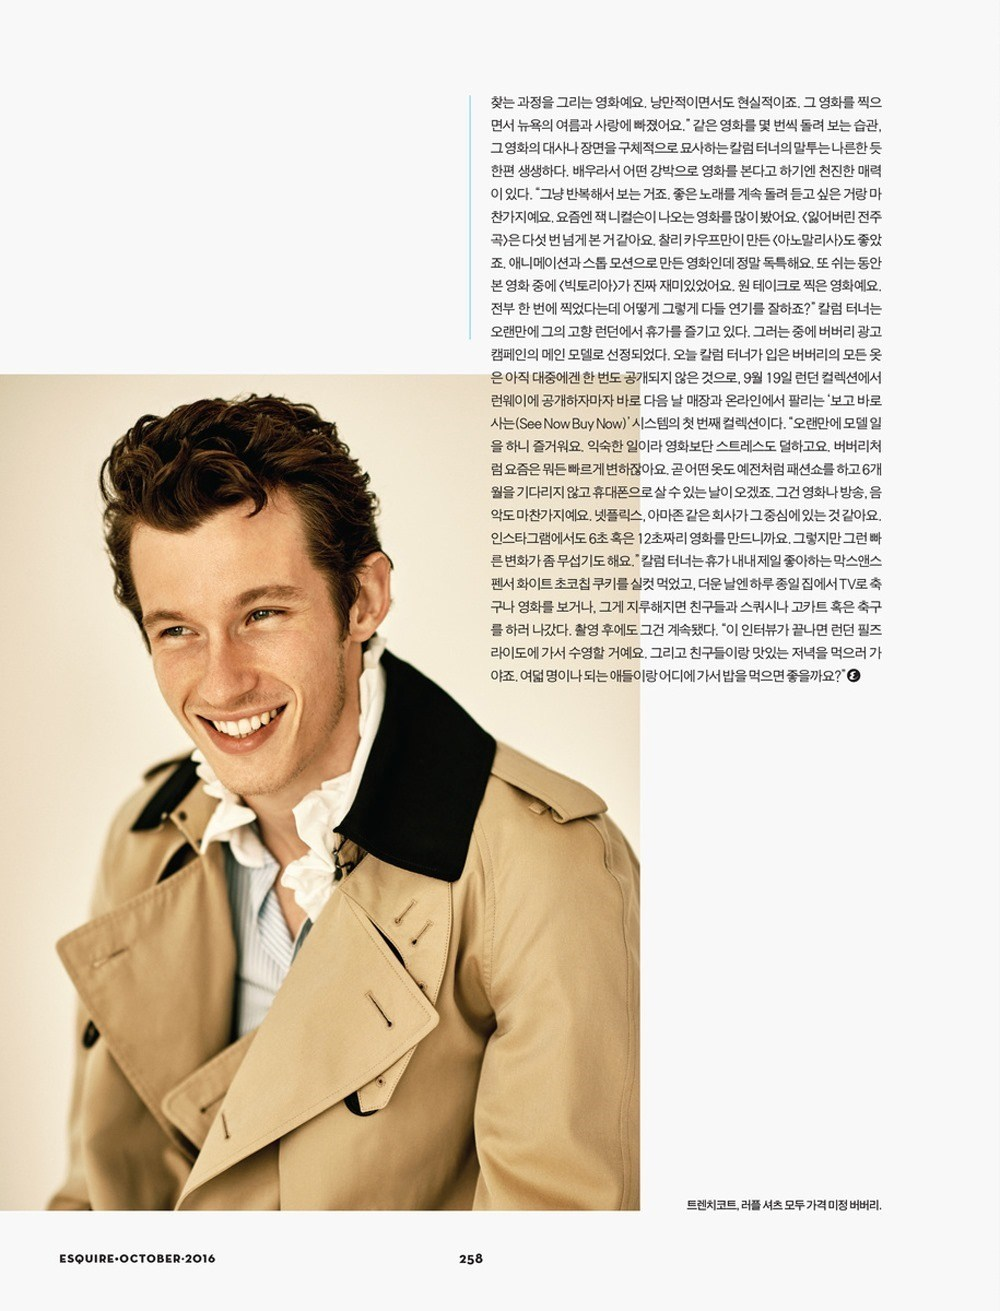 1.EsquireKorea-CallumTurner-Interview_1.jpg